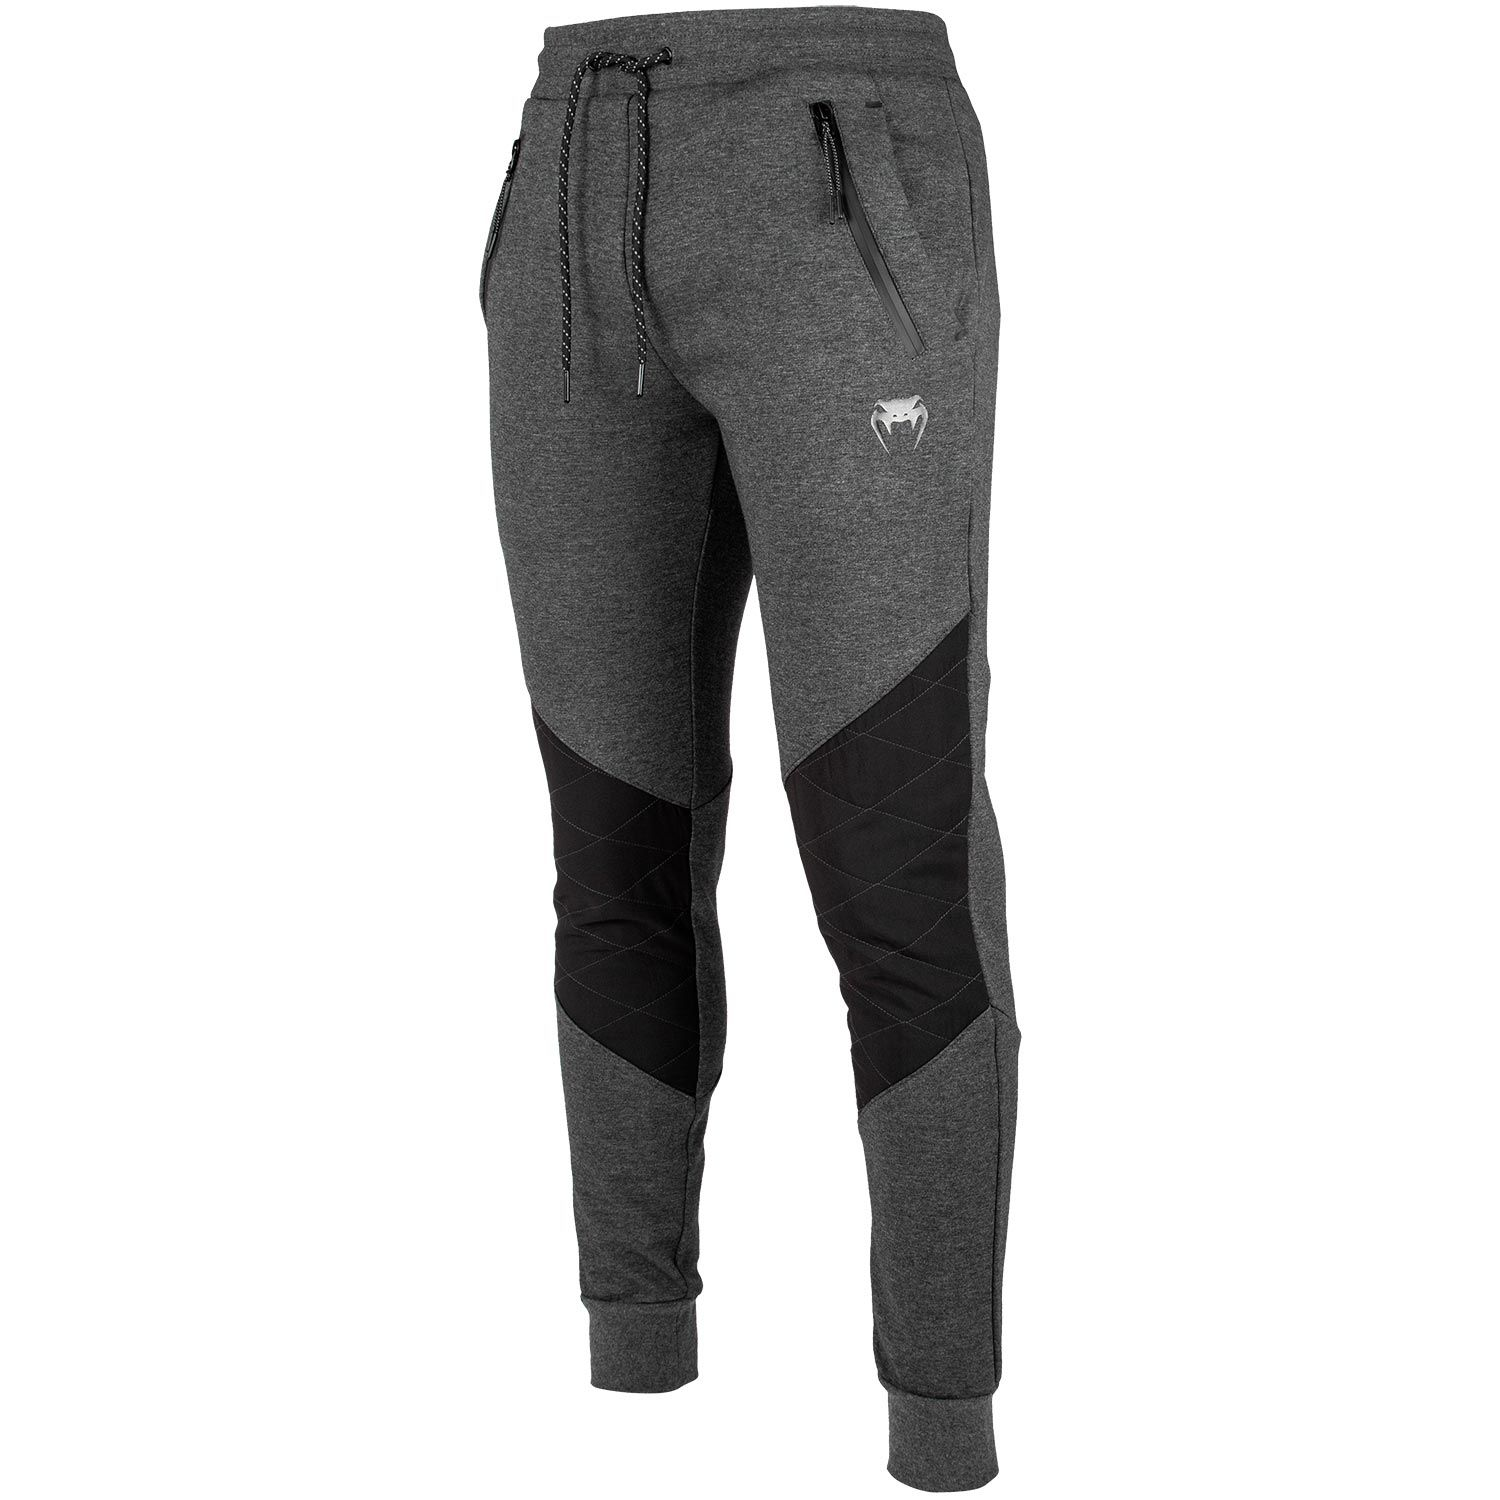 Jogging Venum Laser 2.0 - Gris Chiné - Exclusivité